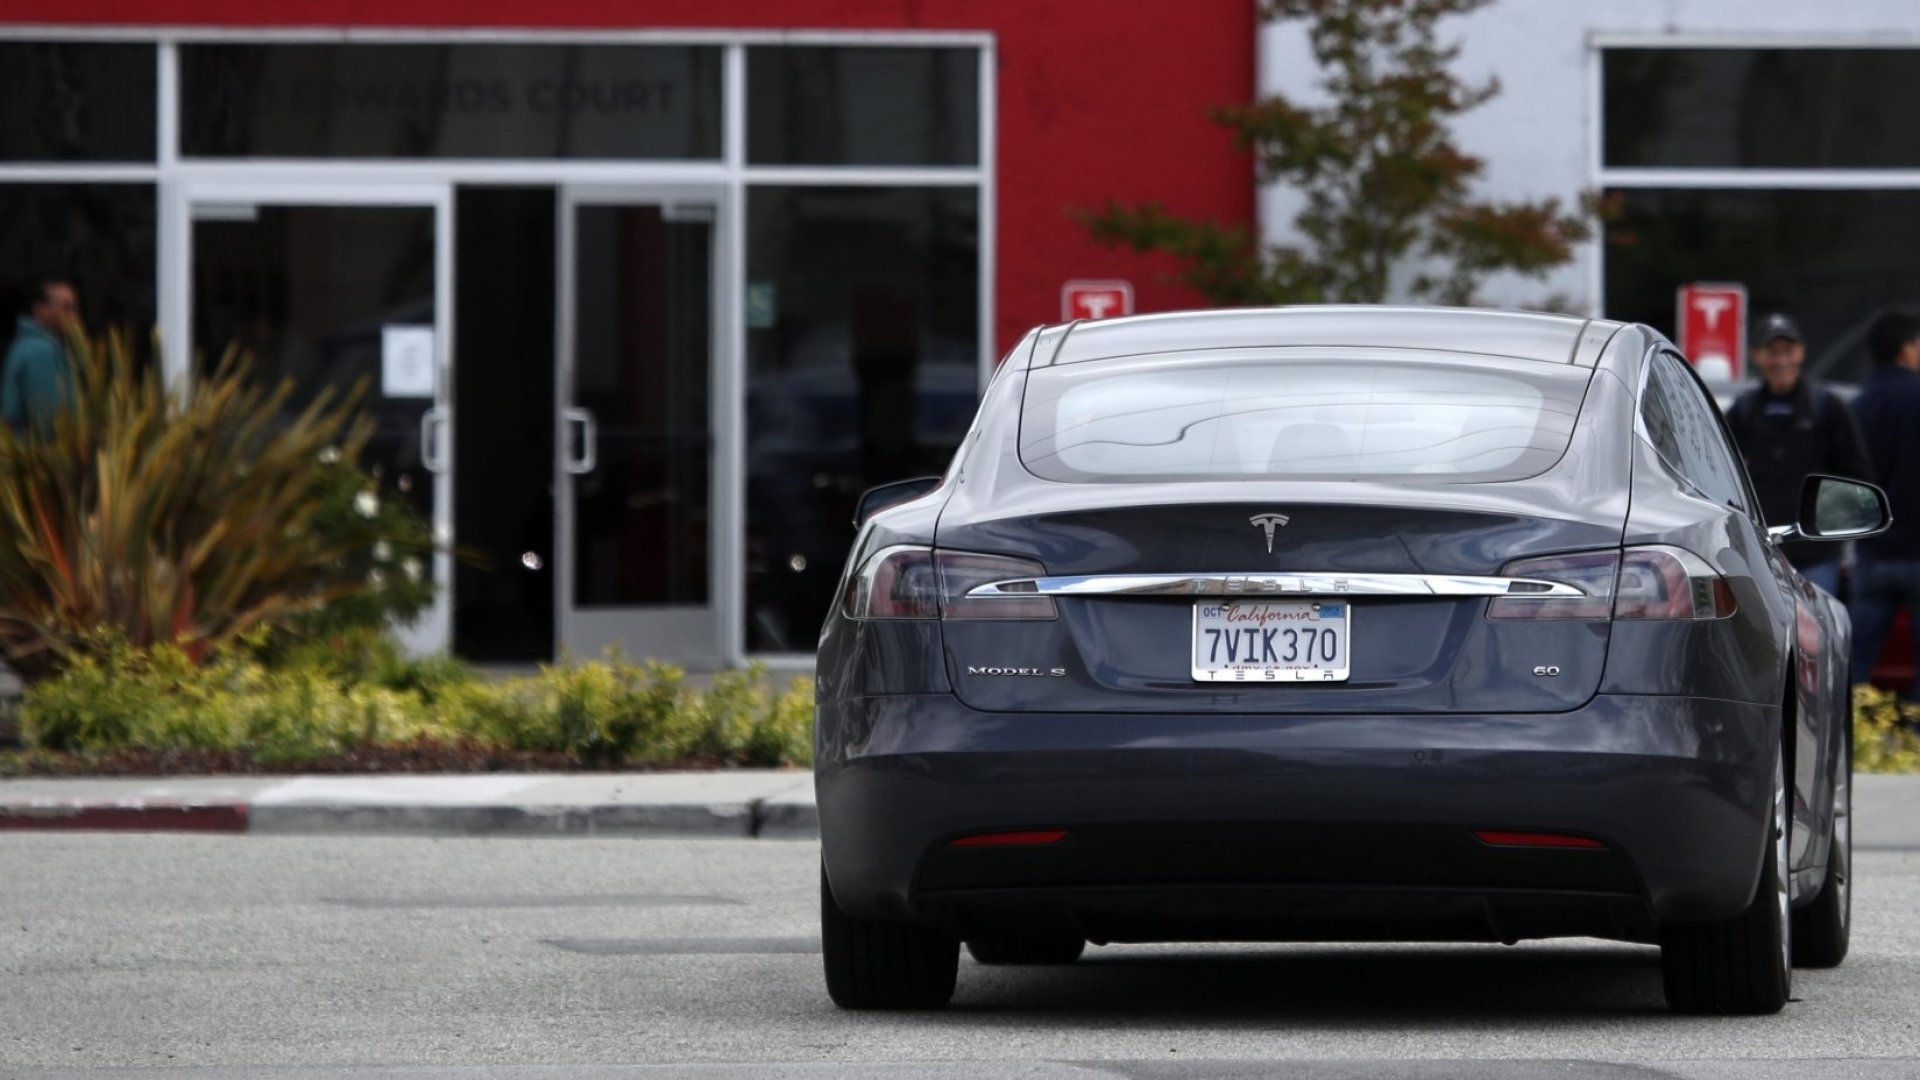 Tesla's 'Smart Summon' Feature Is Causing Problems in Parking Lots--and Regulators Are Paying Attention